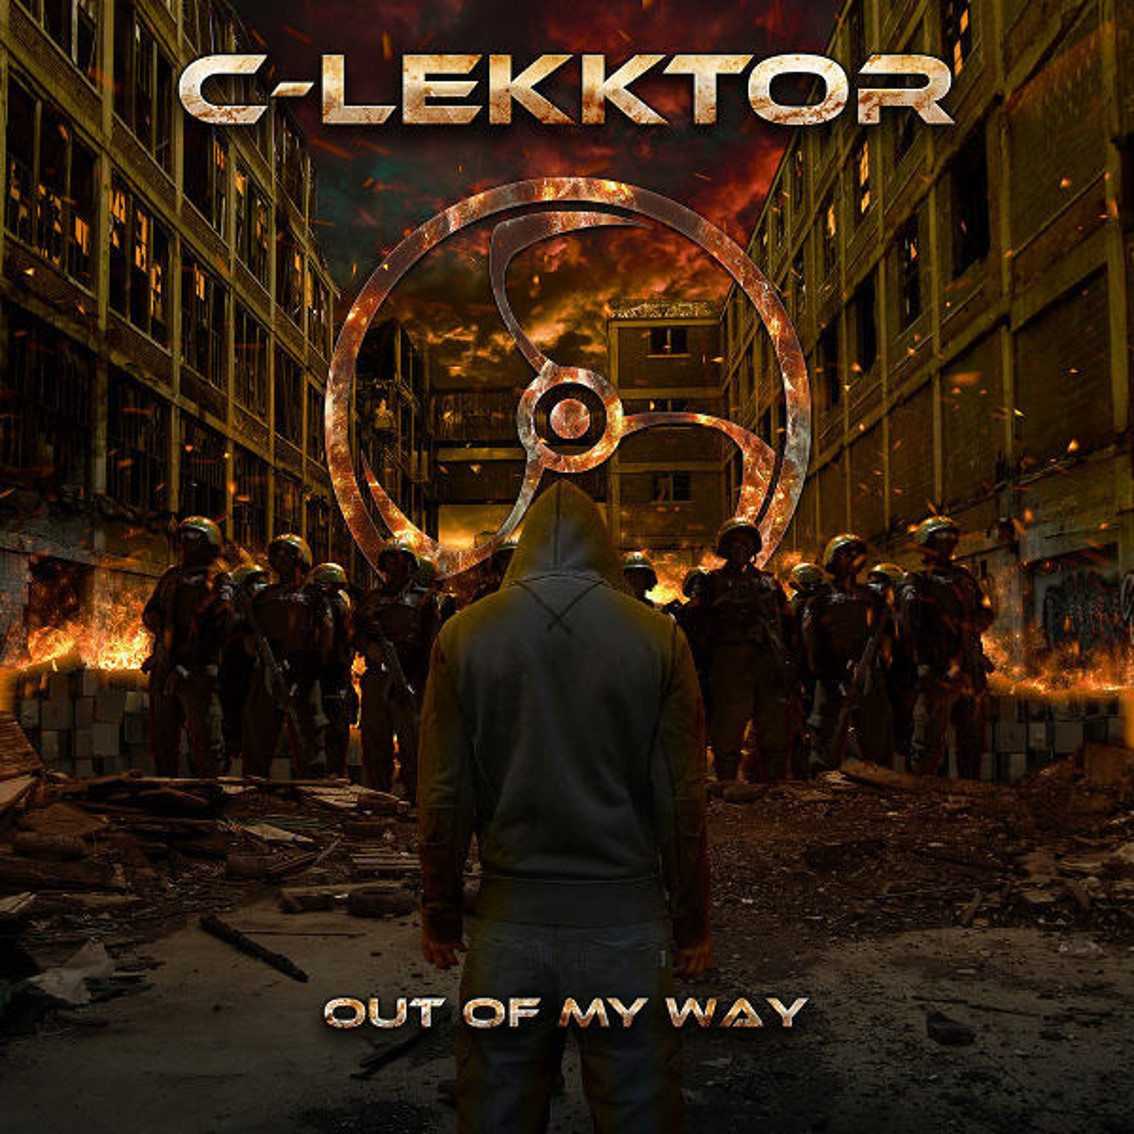 C-Lekktor returns with (double CD)'Out Of My Way' - check out the leading track